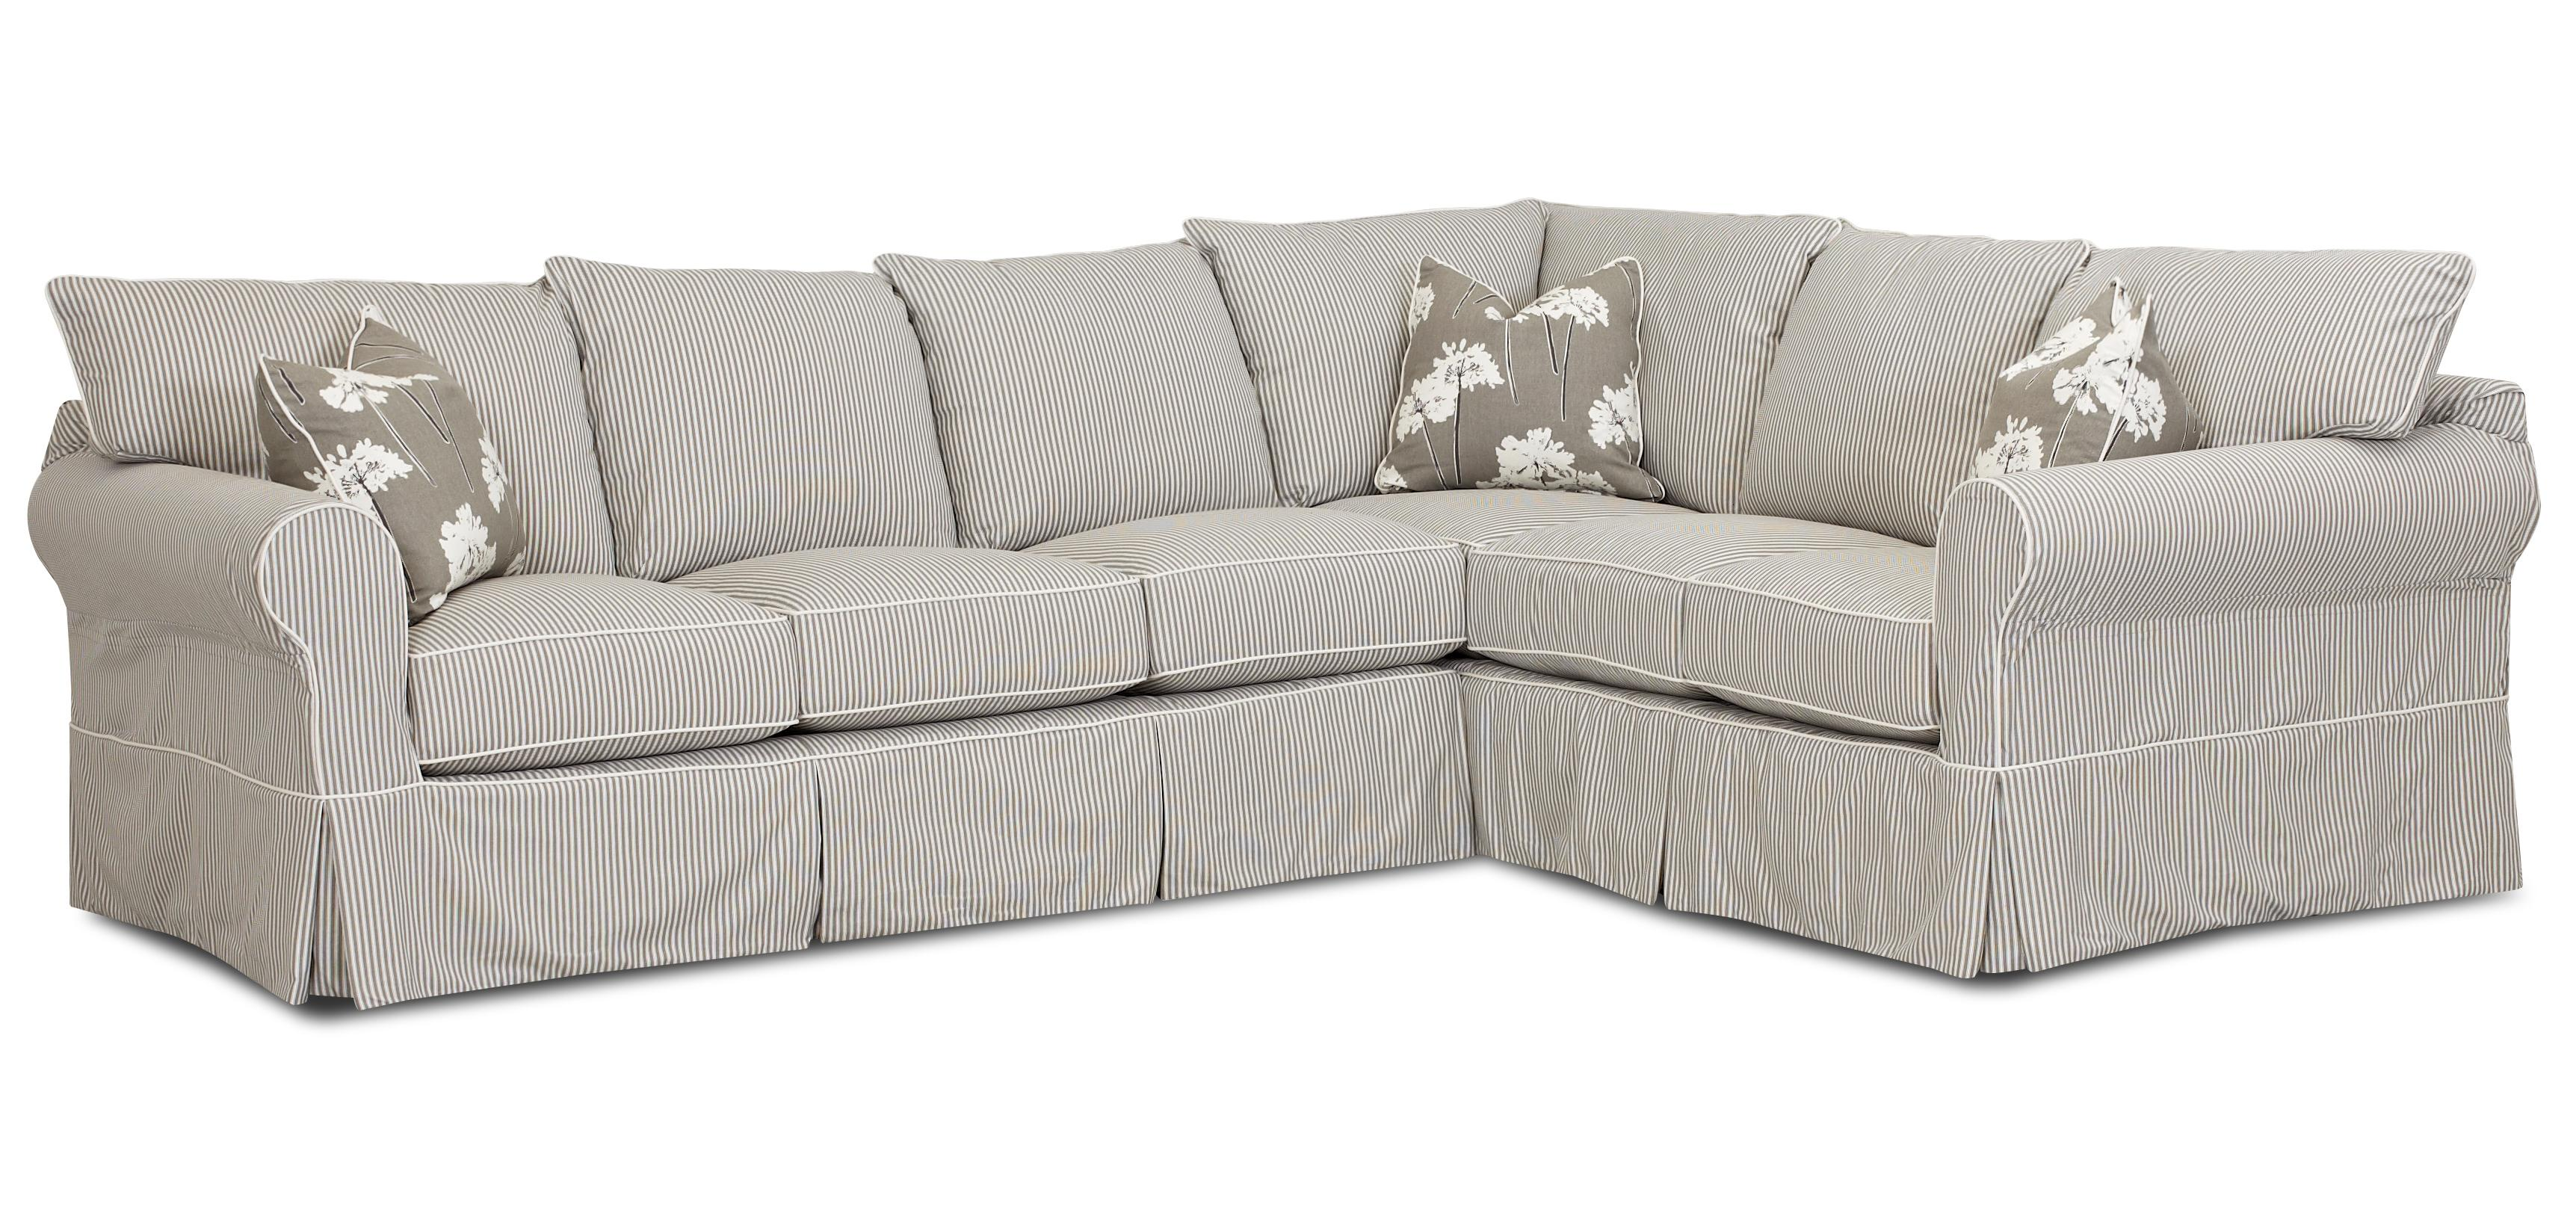 Jenny Transitional 2 Piece Sectional Sofa by Klaussner at Johnny Janosik